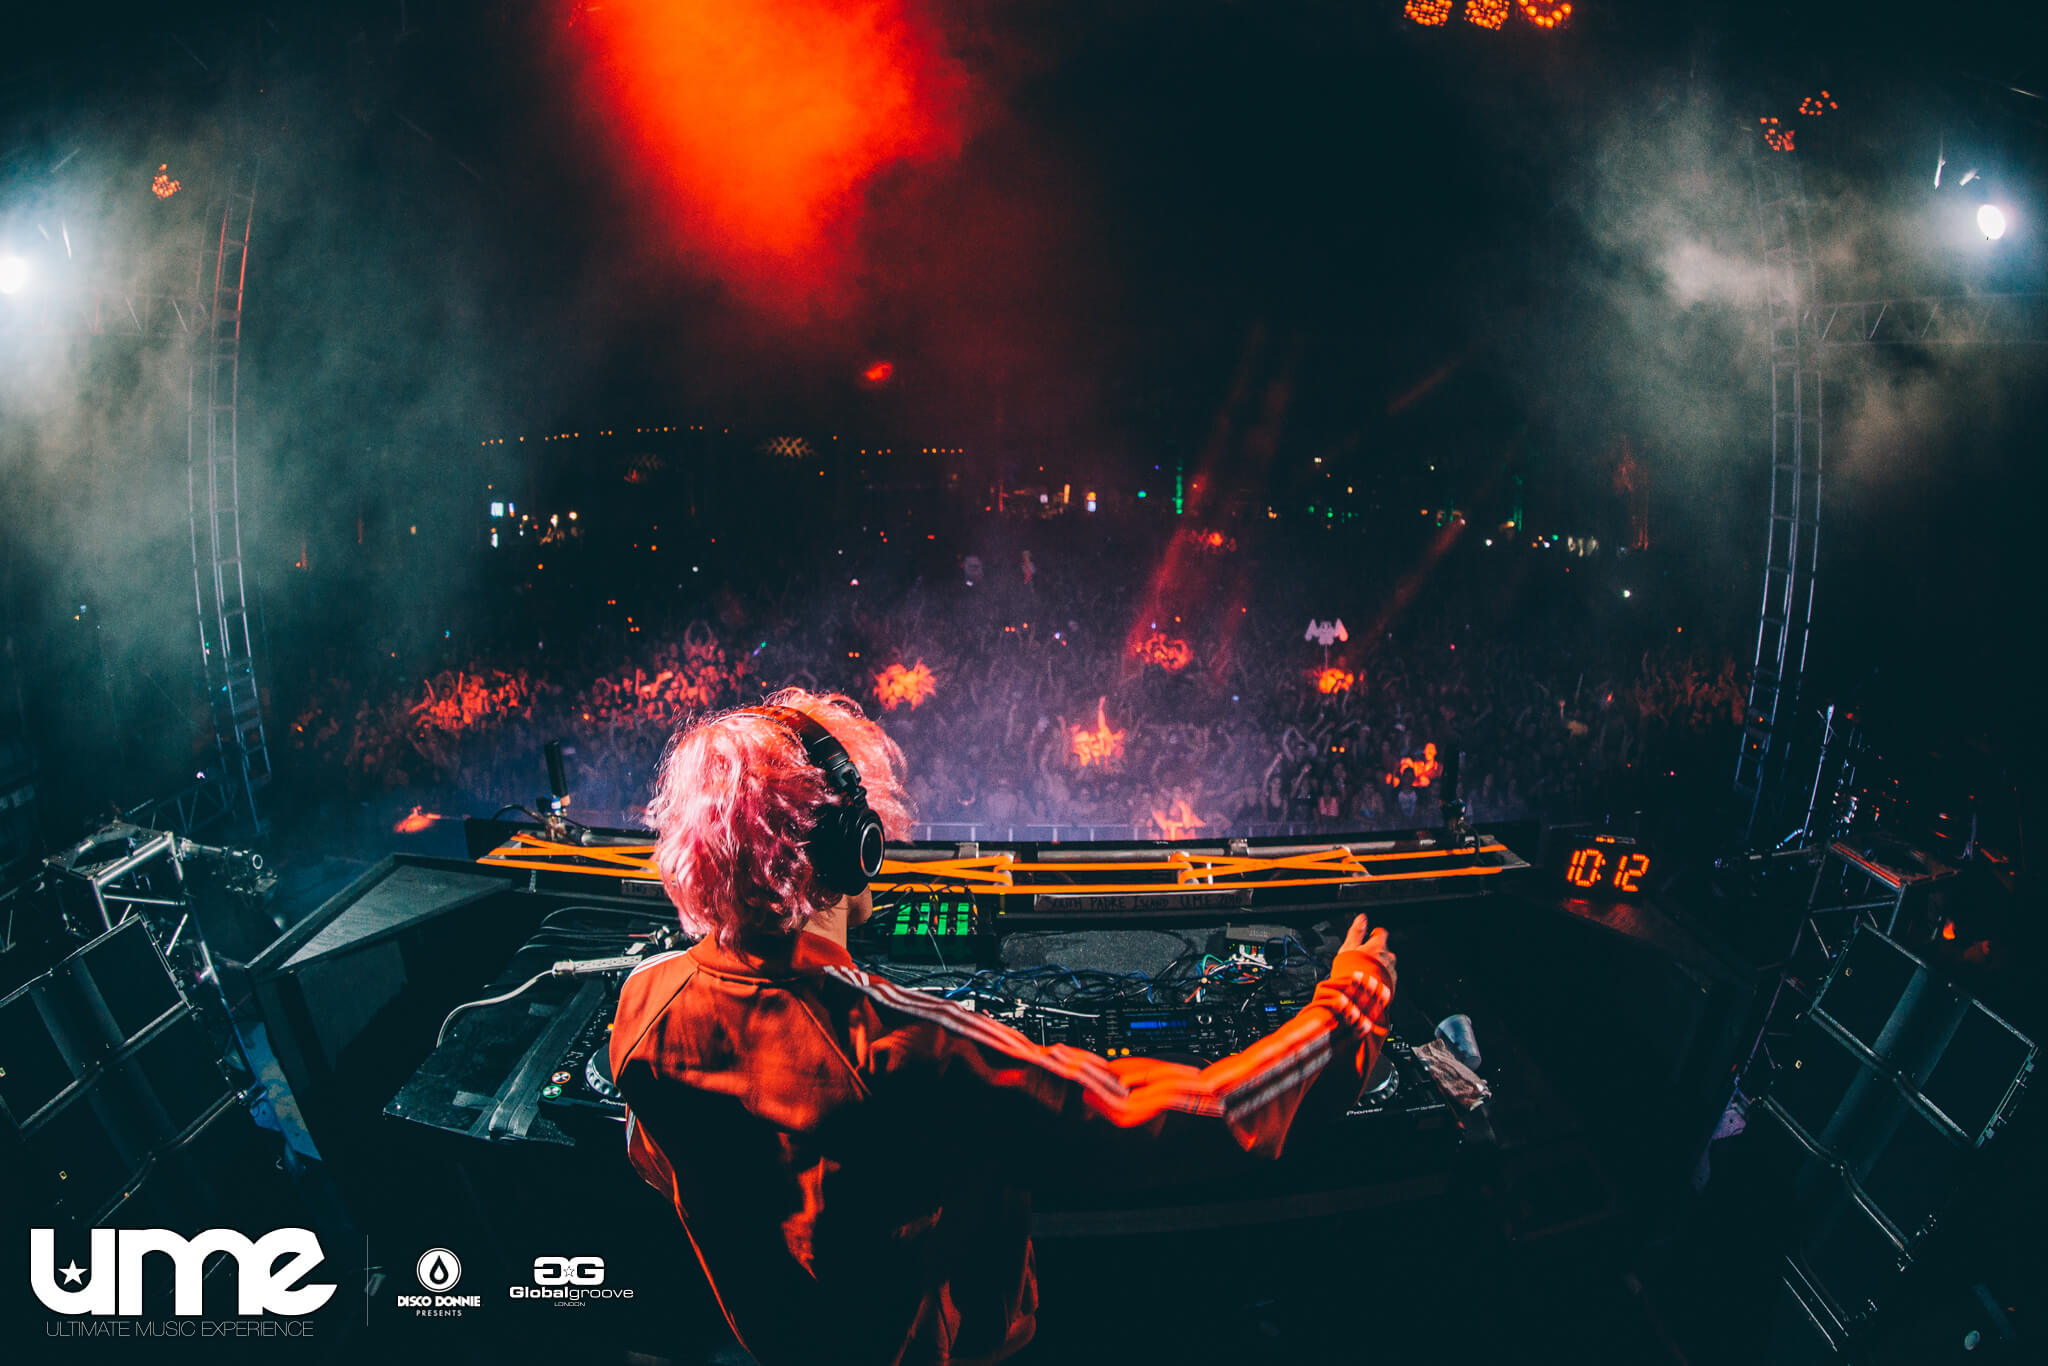 jackal live at the ume pre-party 2016